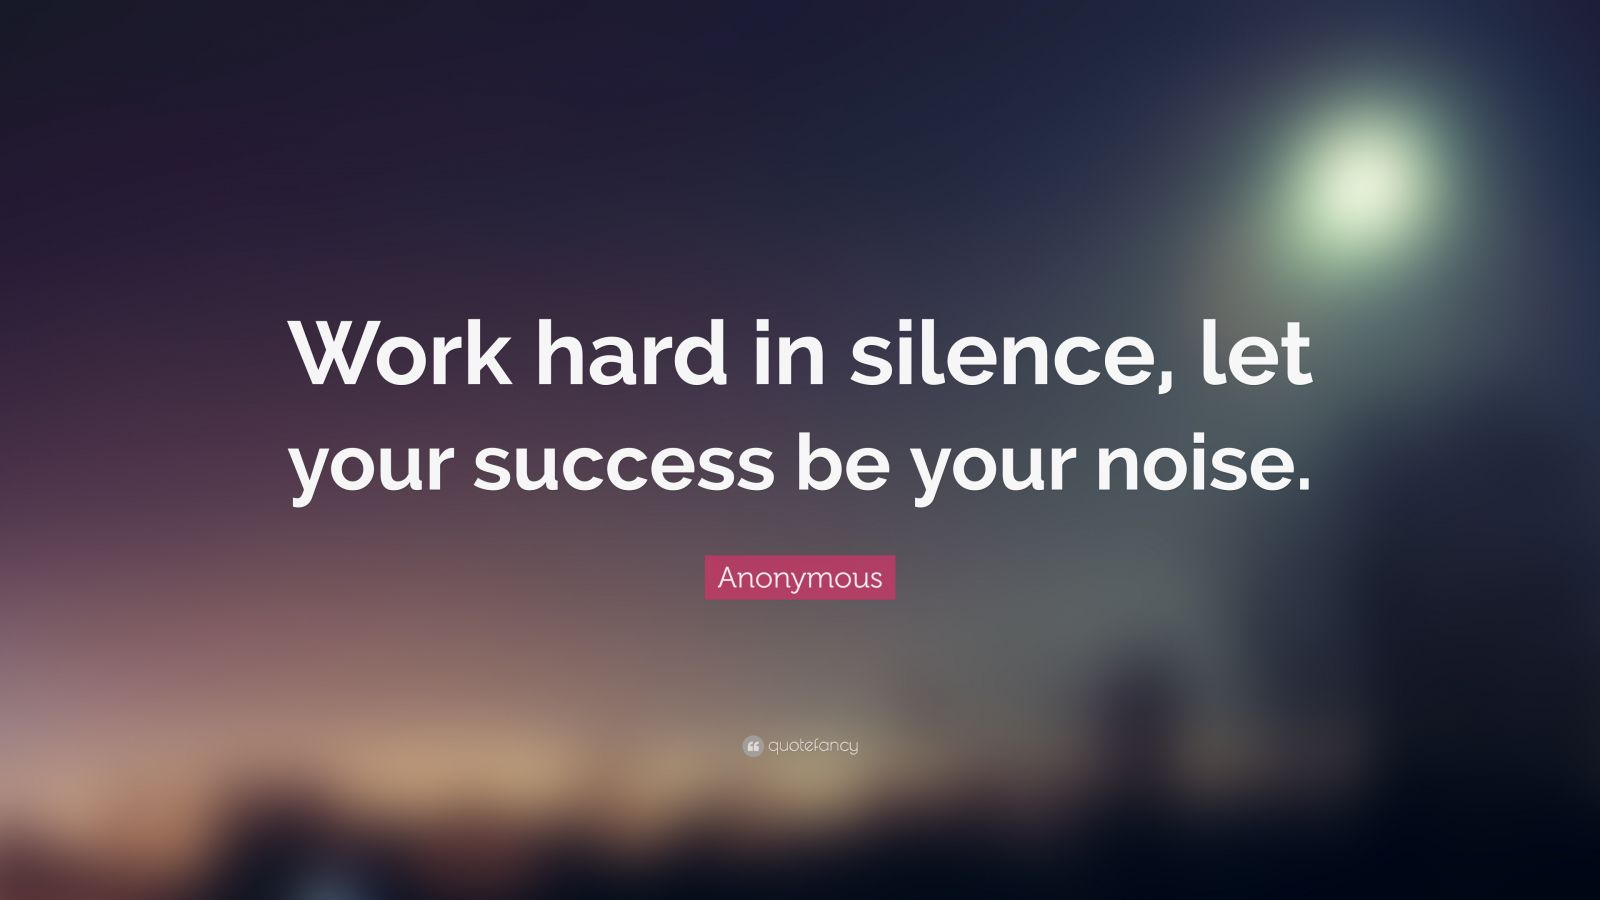 Motivation Business Quotes Wallpaper Hd Desktop Frank Ocean Quote Work Hard In Silence Let Your Success